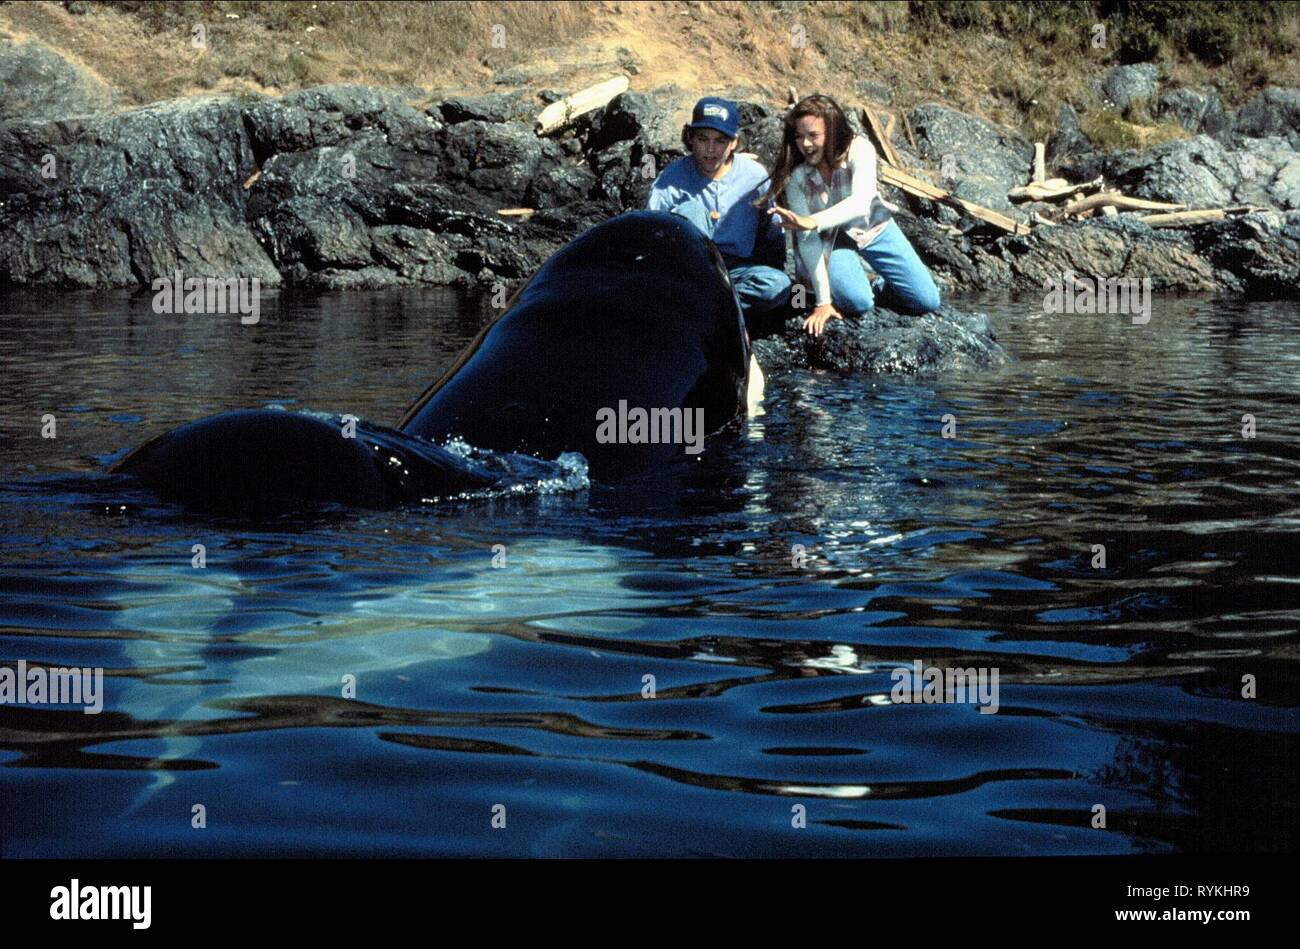 Free Willy 2 The Adventure Home Immagini E Fotos Stock Alamy